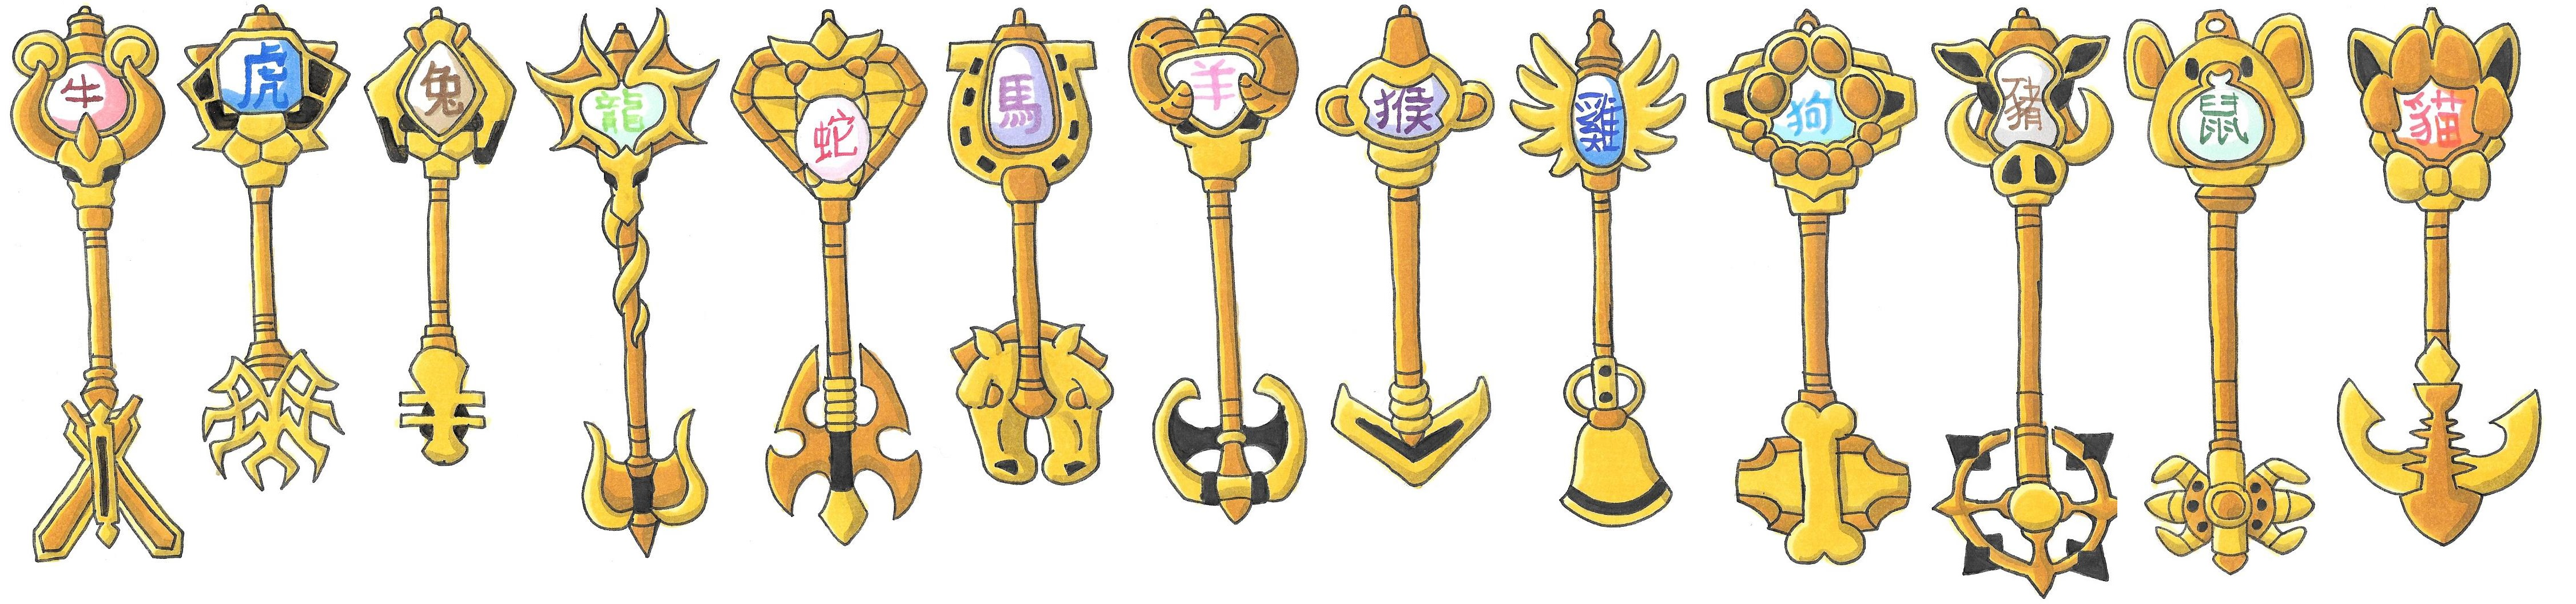 Fairy Tail All Zodiac Keys Bigking Keywords And Pictures